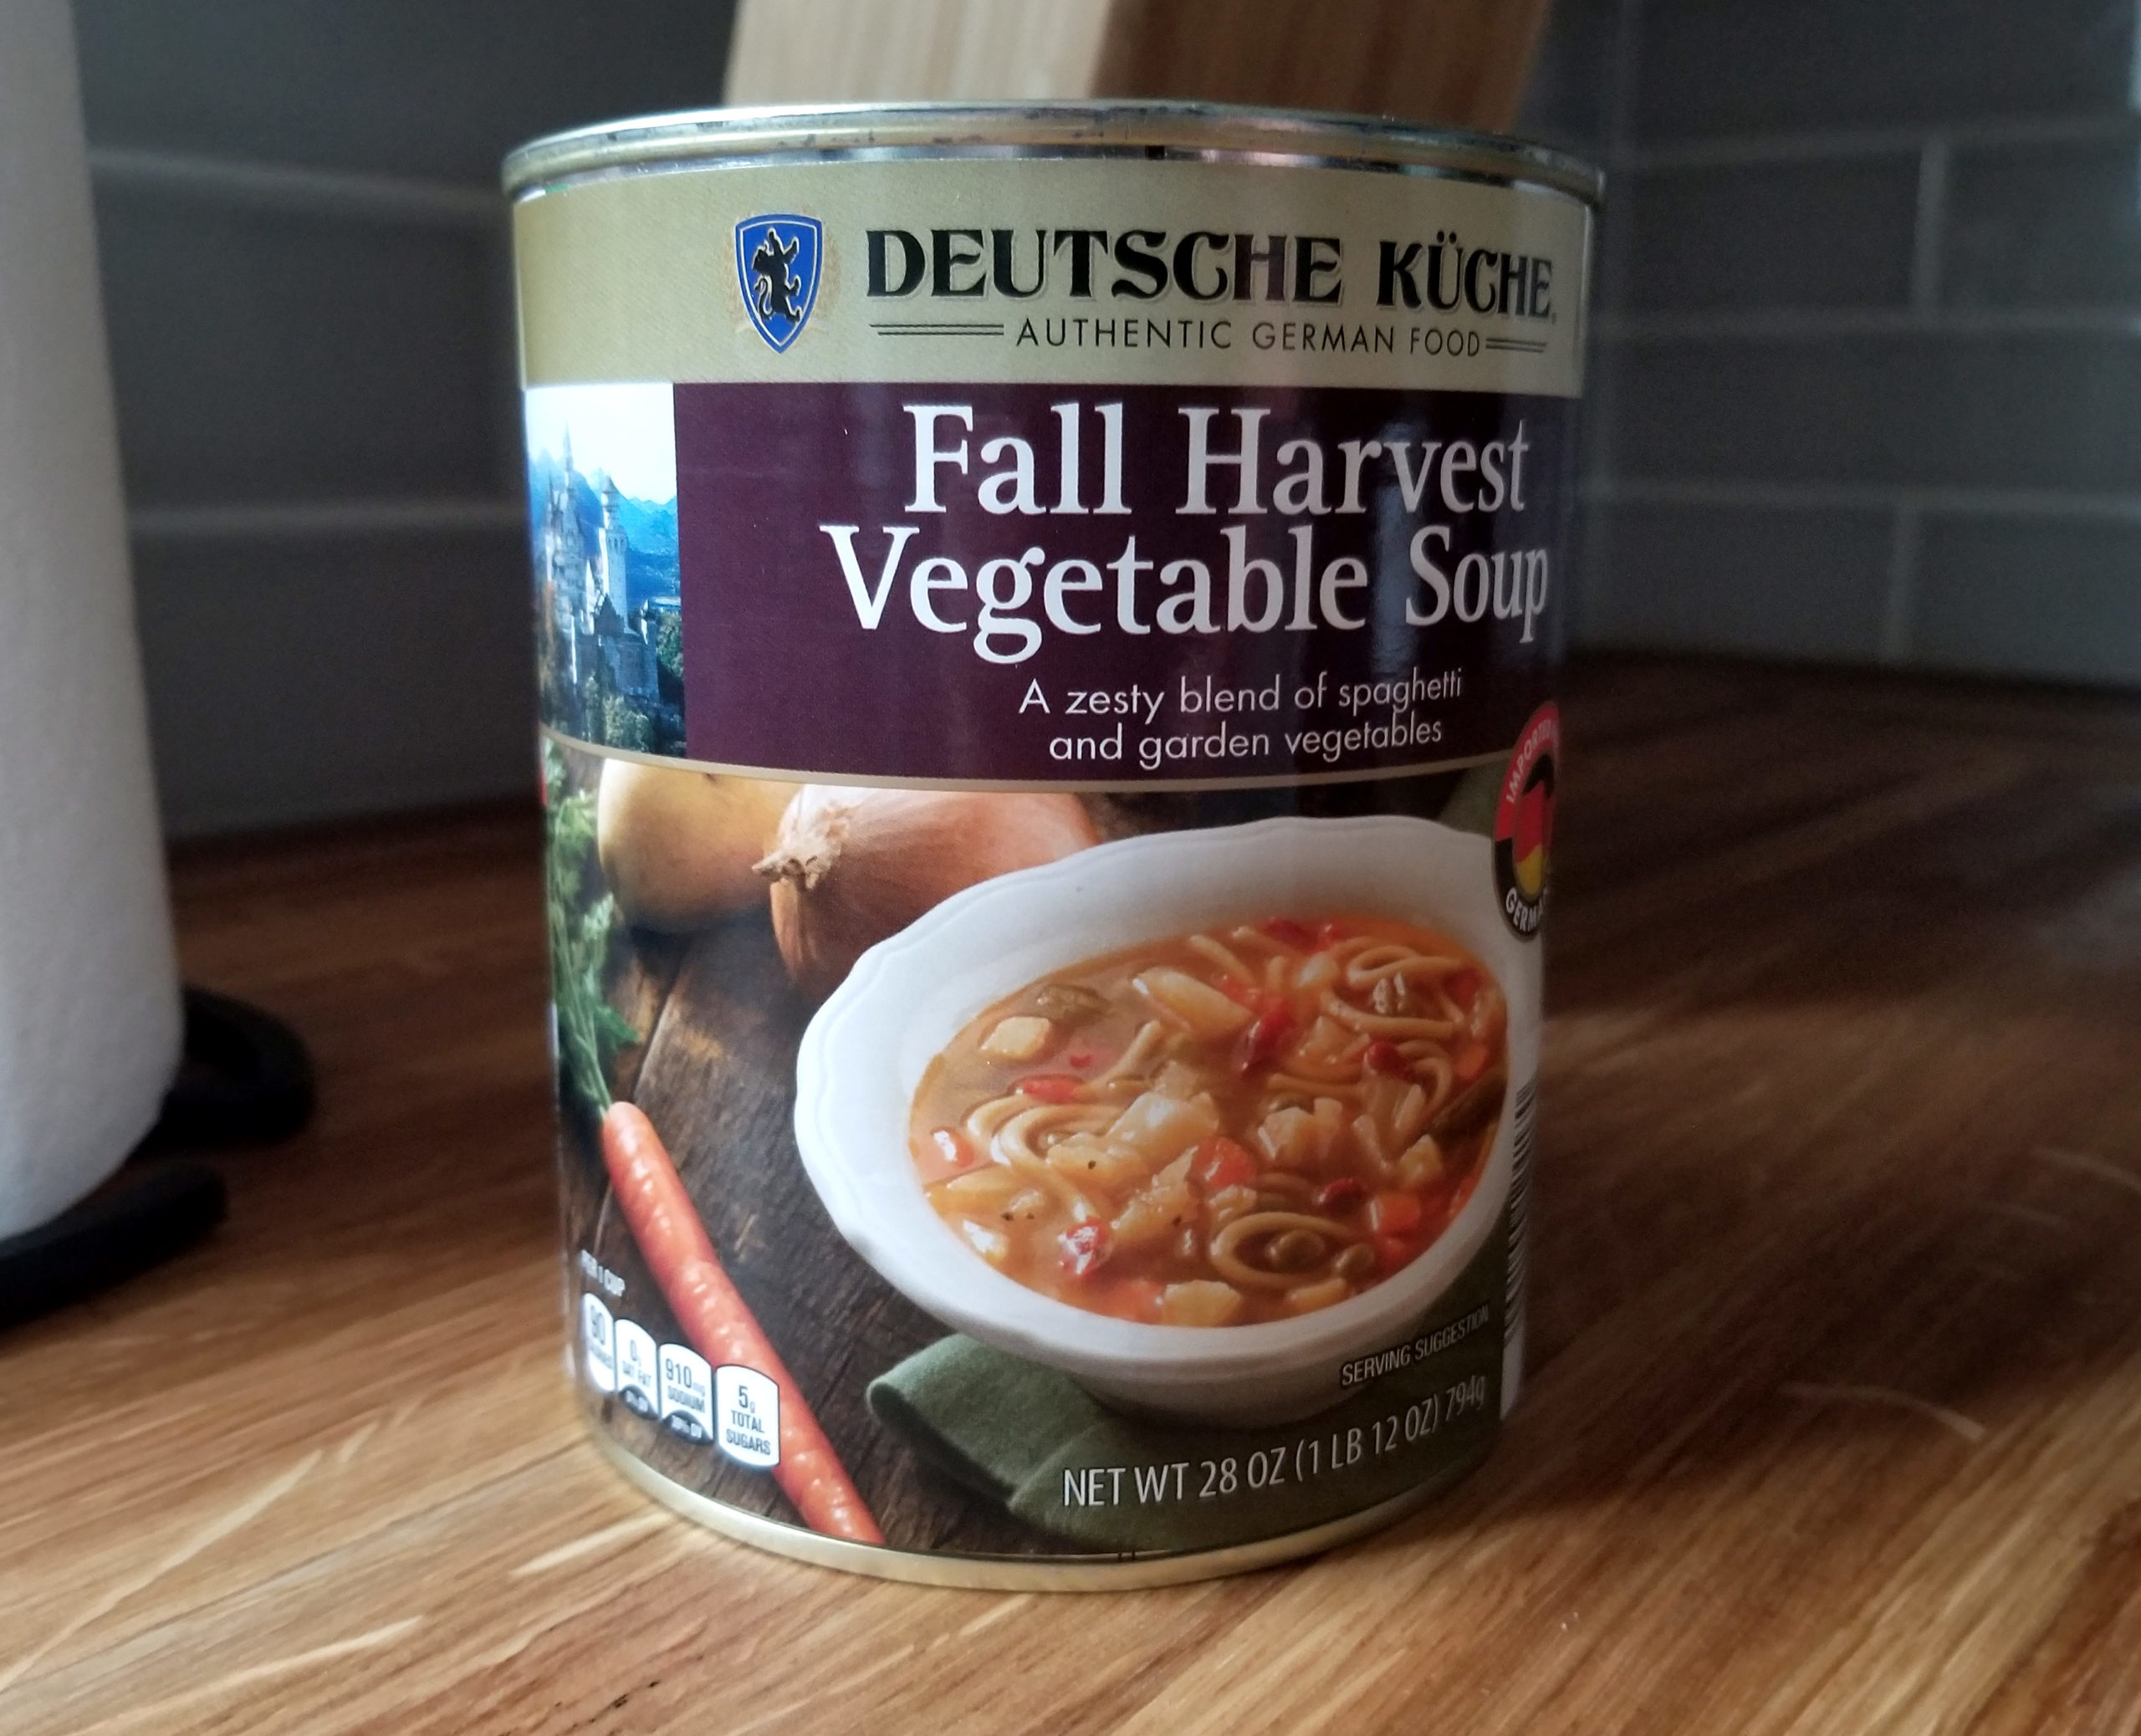 Fall Harvest Vegetable Soup